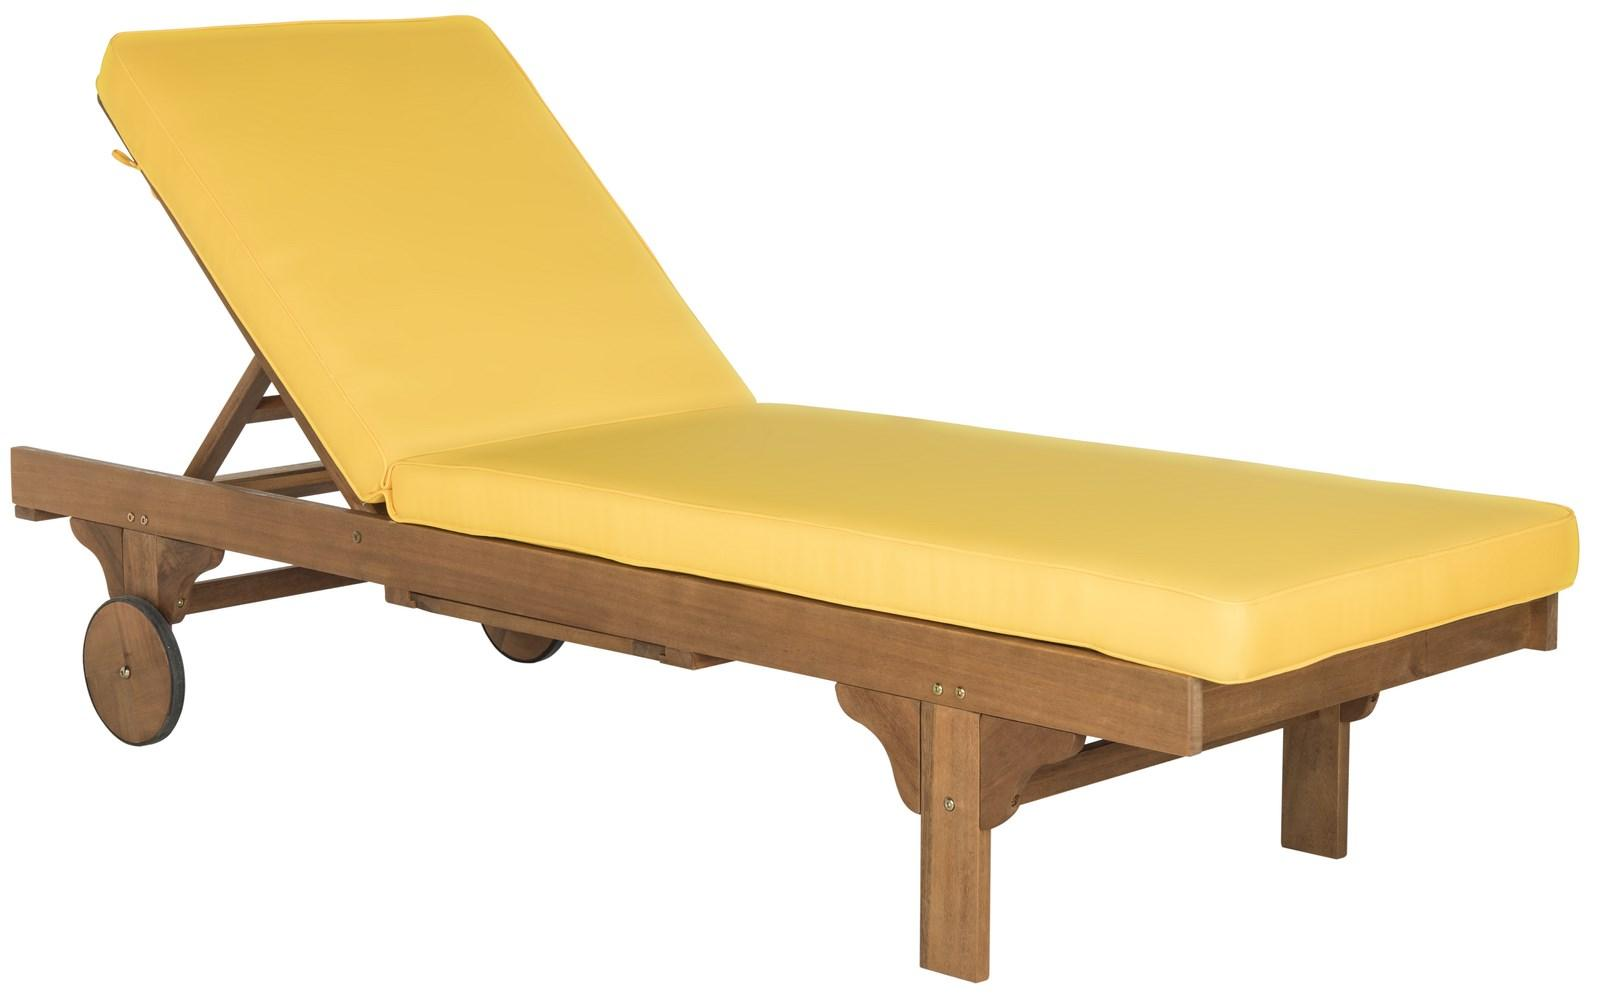 Chaise Lounge Chair Outdoor Furnishings Safavieh Com